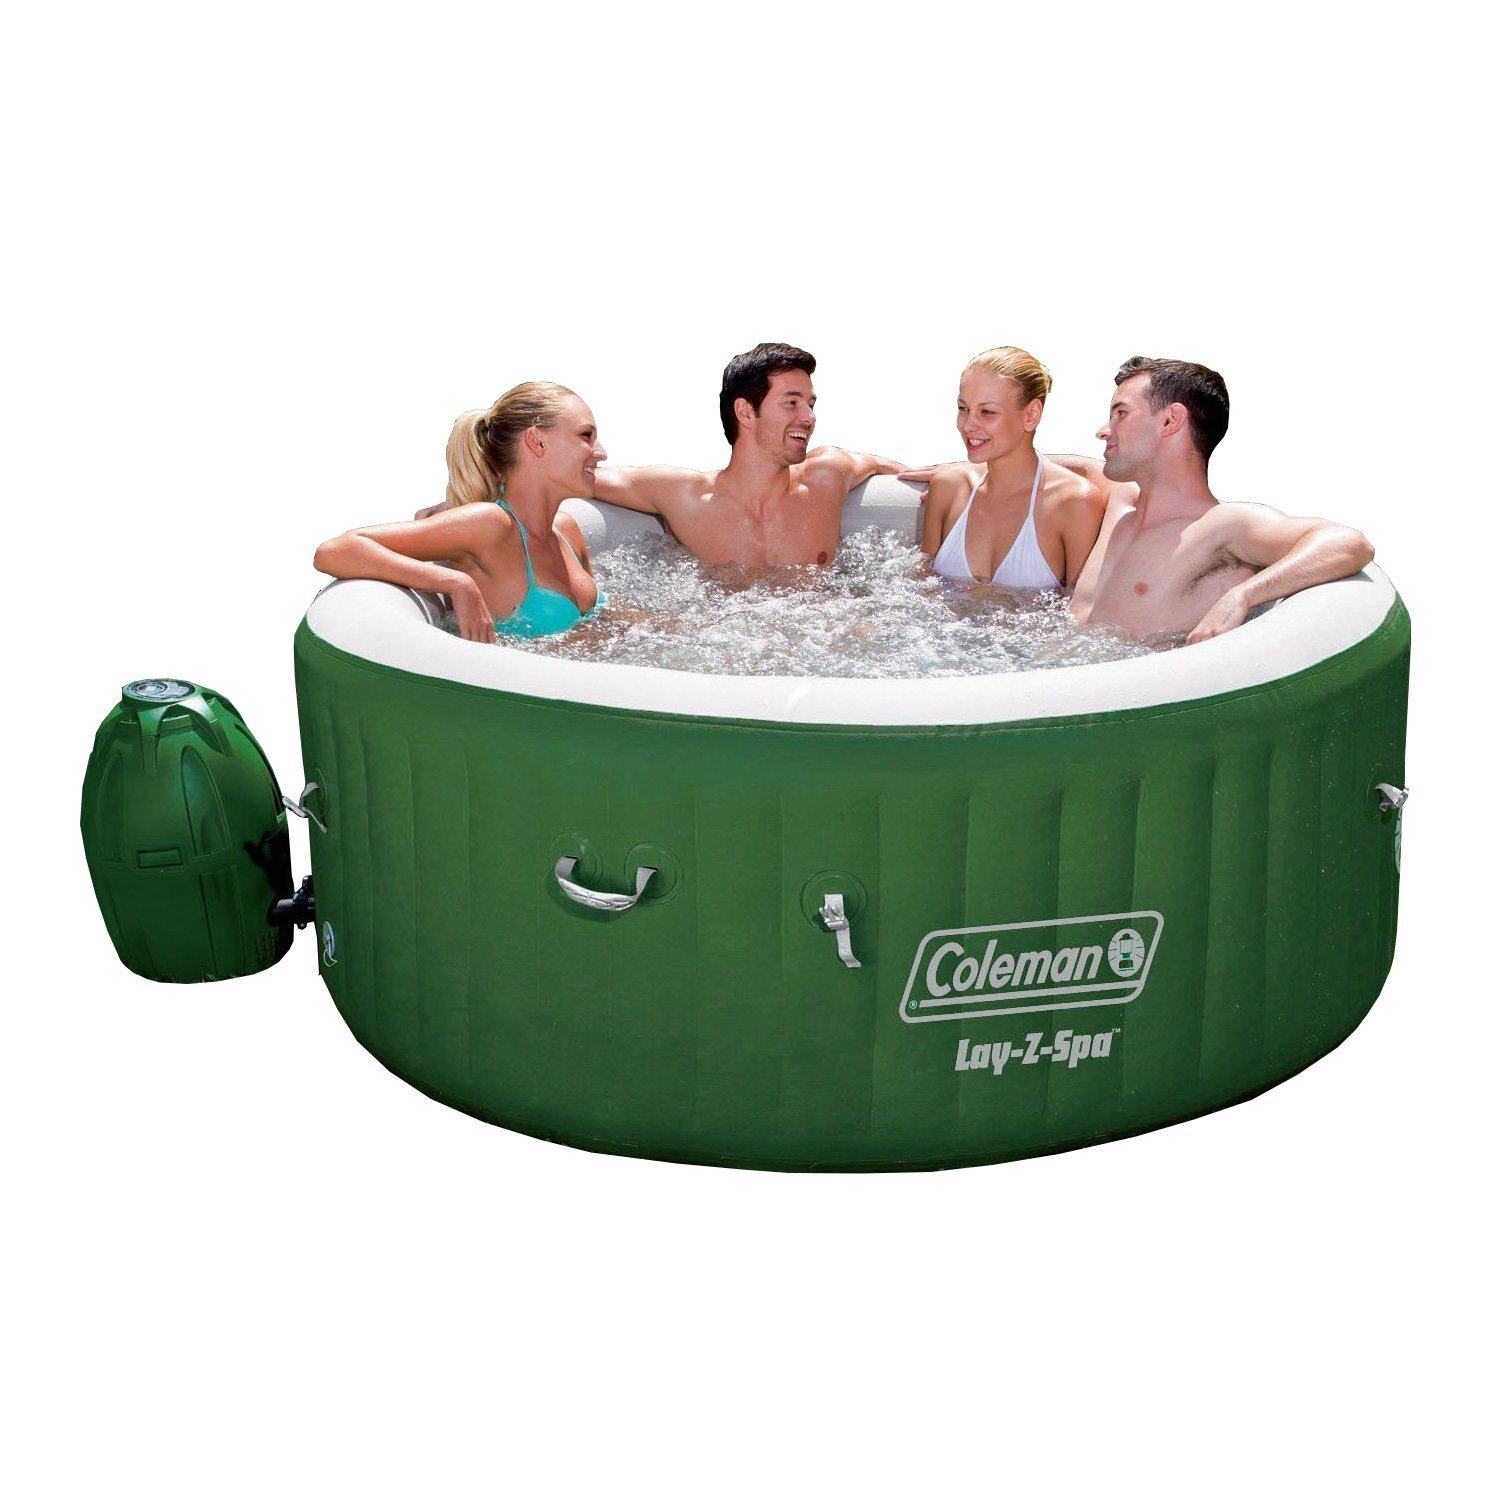 Coleman Lay Z Spa Inflatable Hot Tub